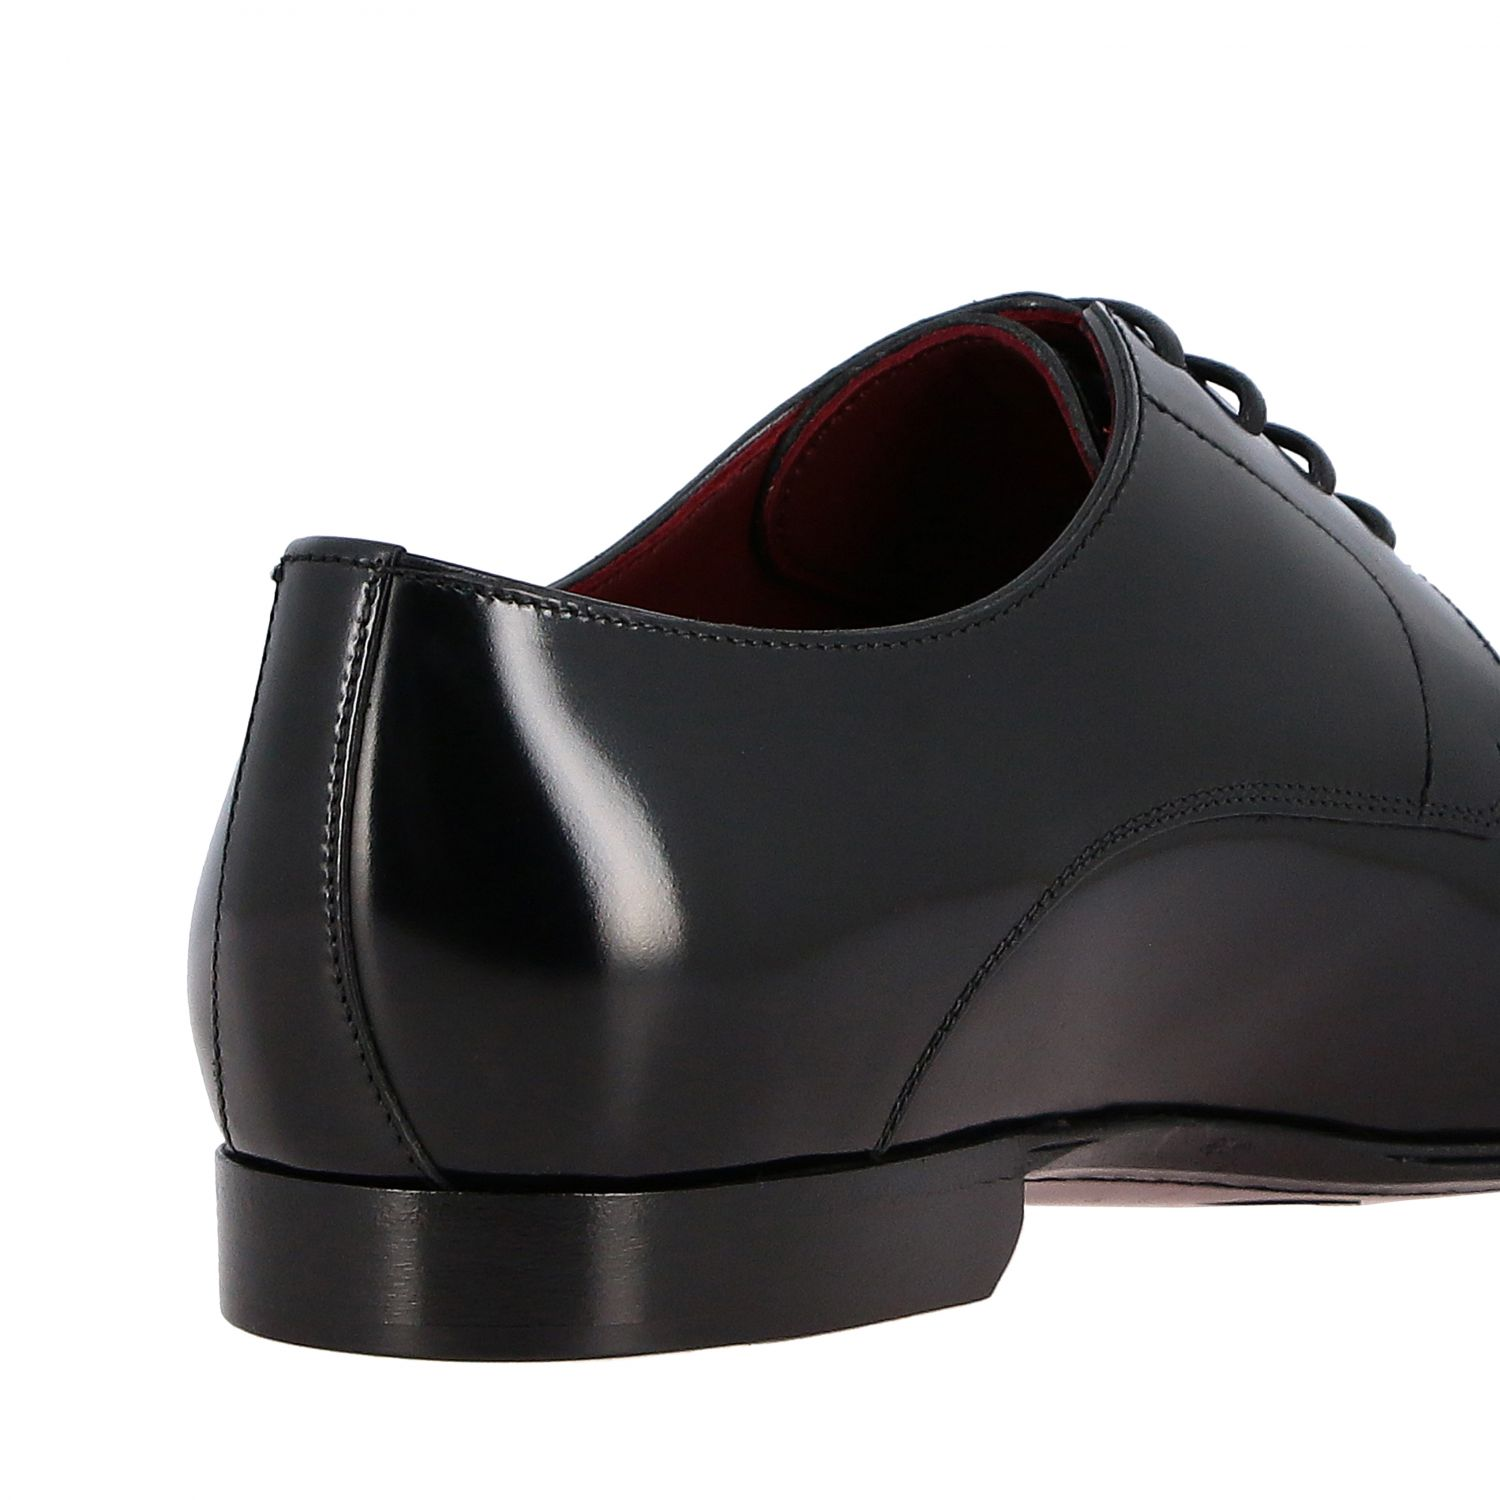 Brogue shoes Dolce & Gabbana: Dolce & Gabbana classic lace-up shoe in shiny leather black 5